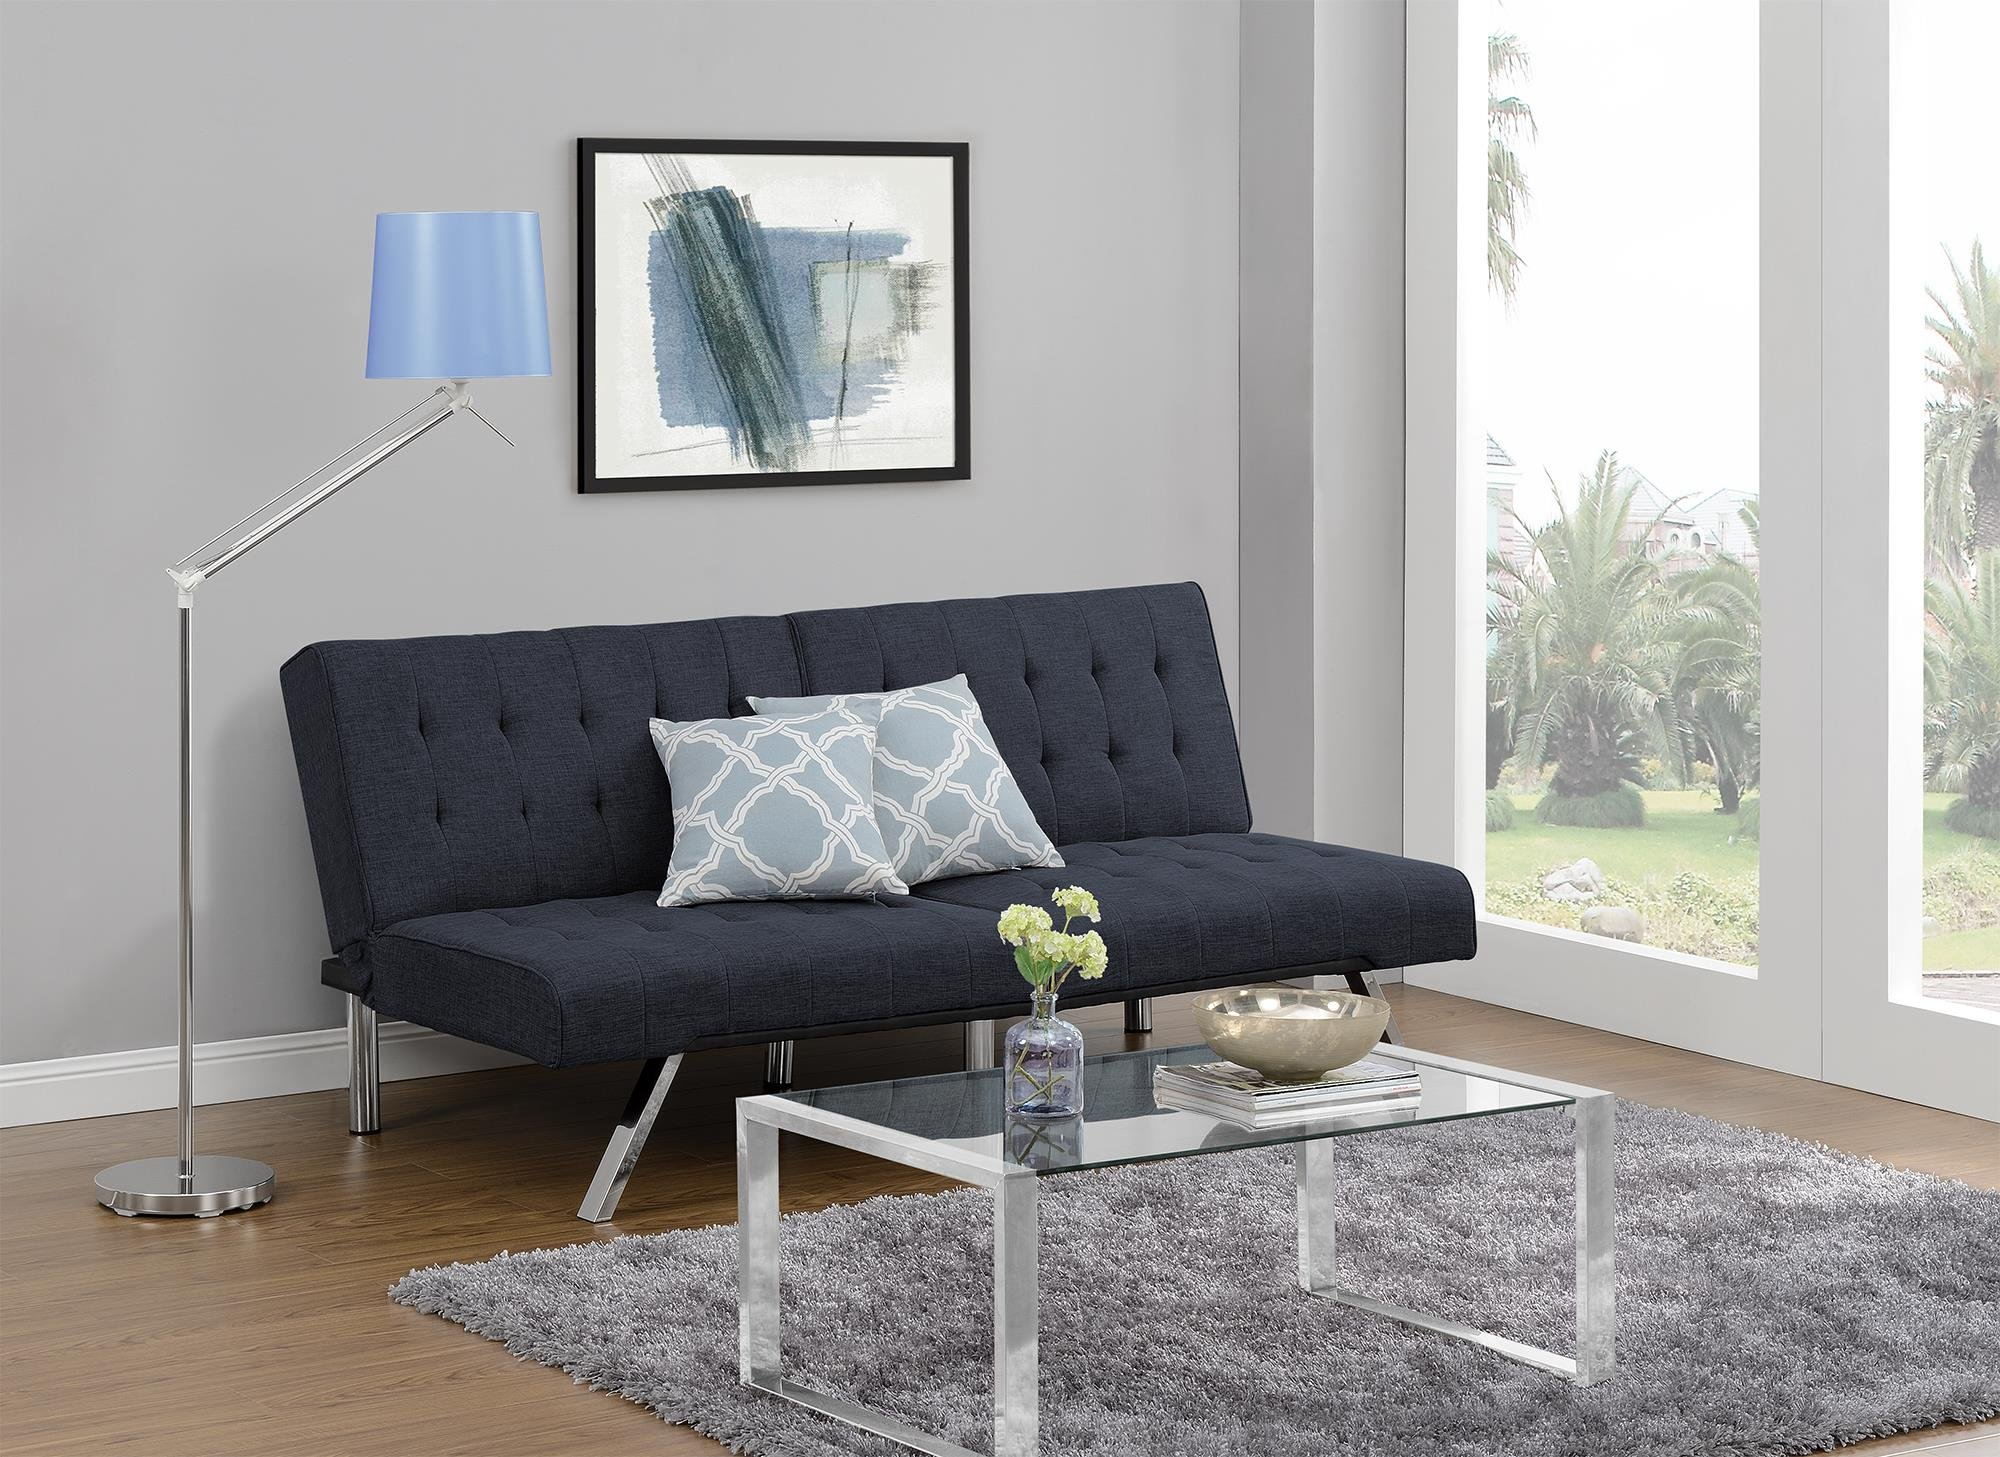 DHP Emily Futon Couch Bed, Modern Sofa Design Includes Sturdy Chrome Legs and Rich Linen Upholstery, Navy by DHP